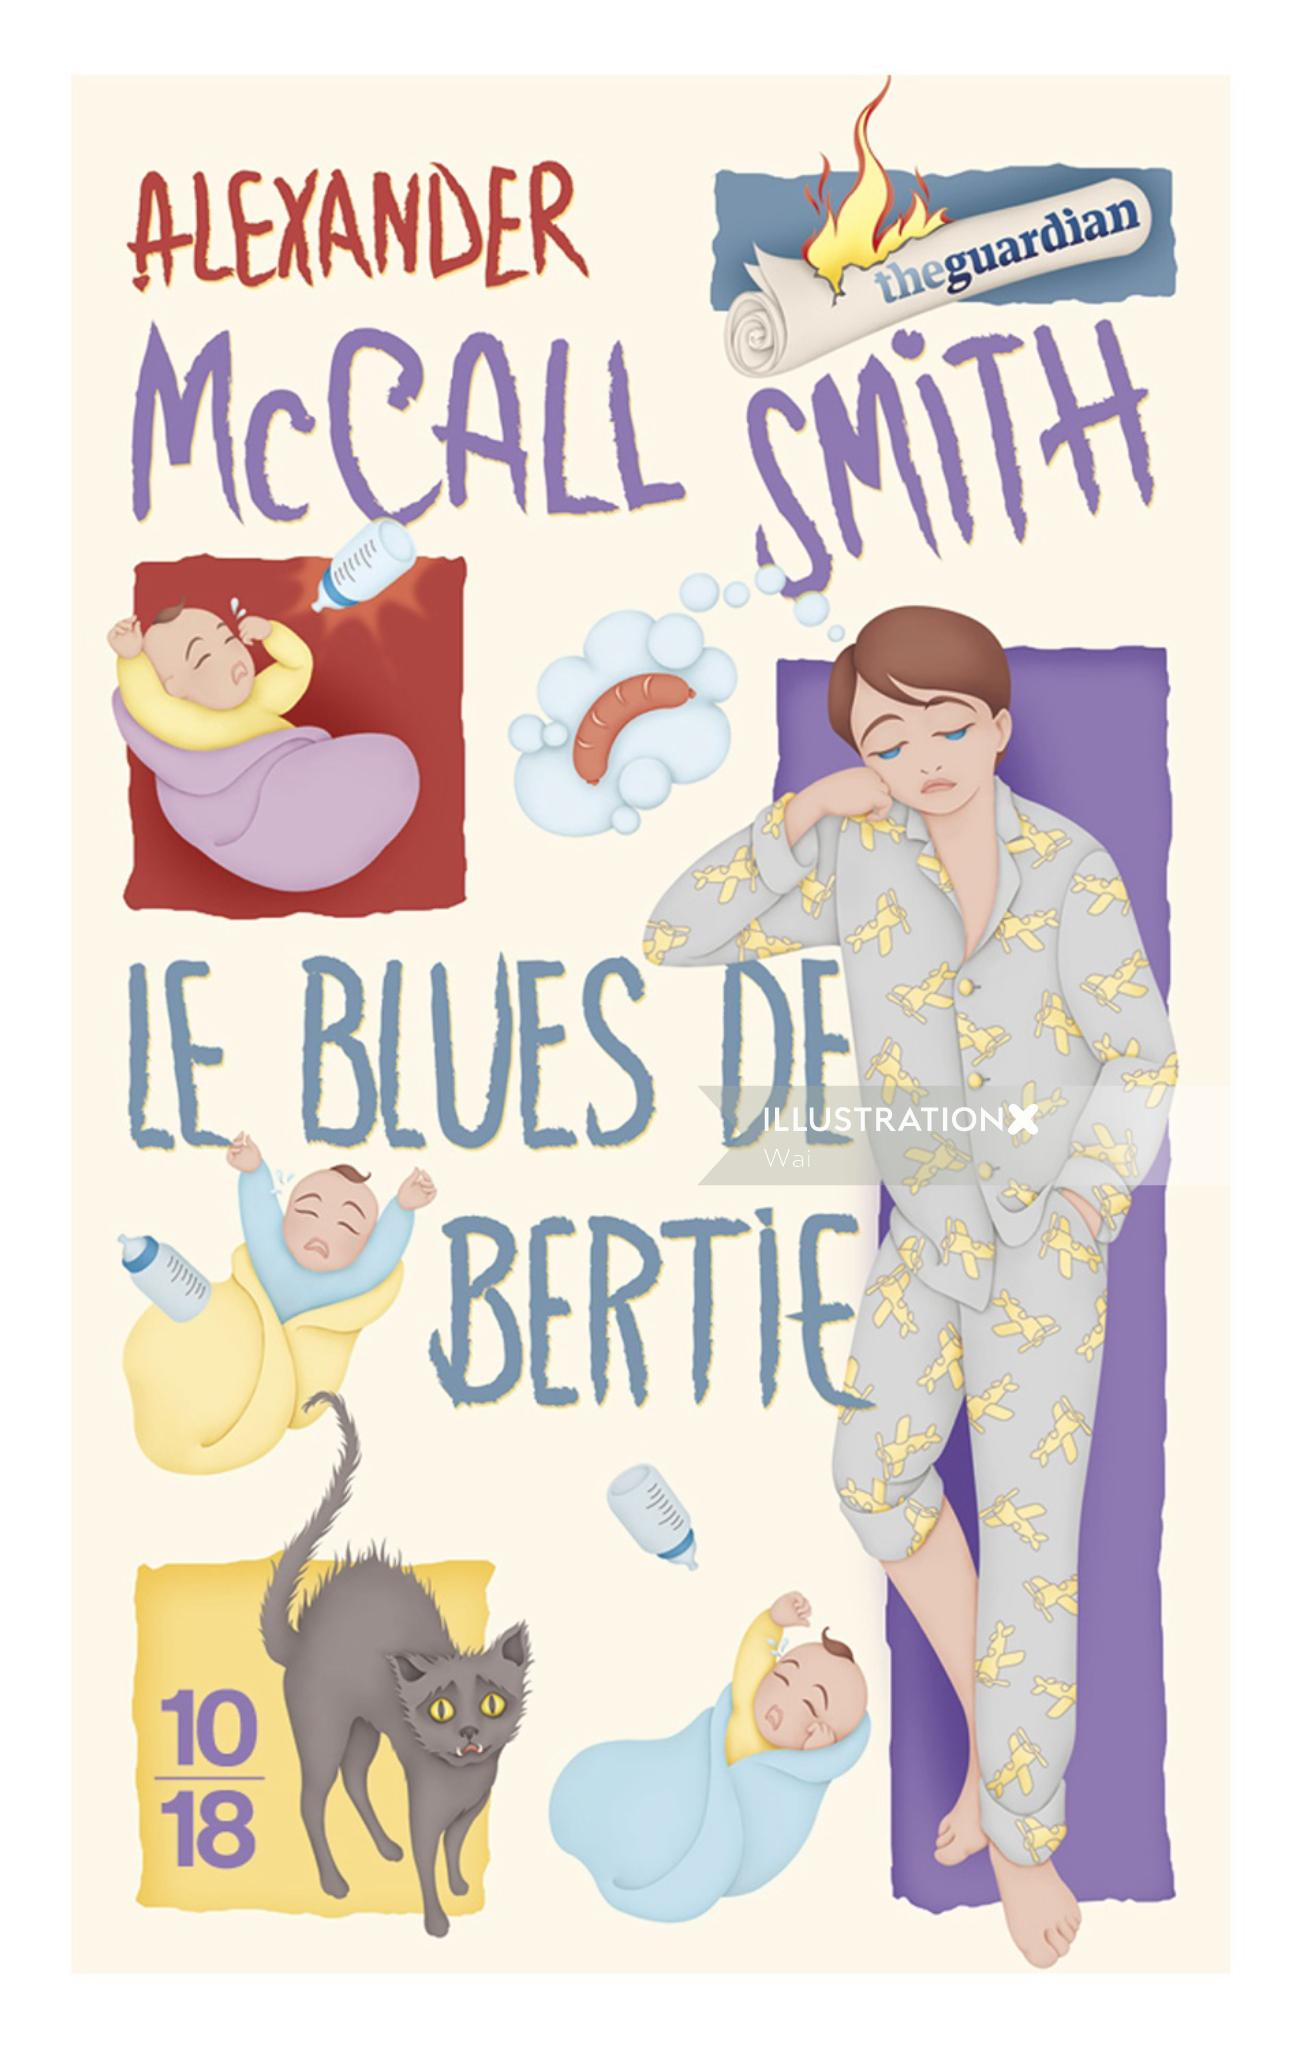 Alexander McCall Smith book cover illustration